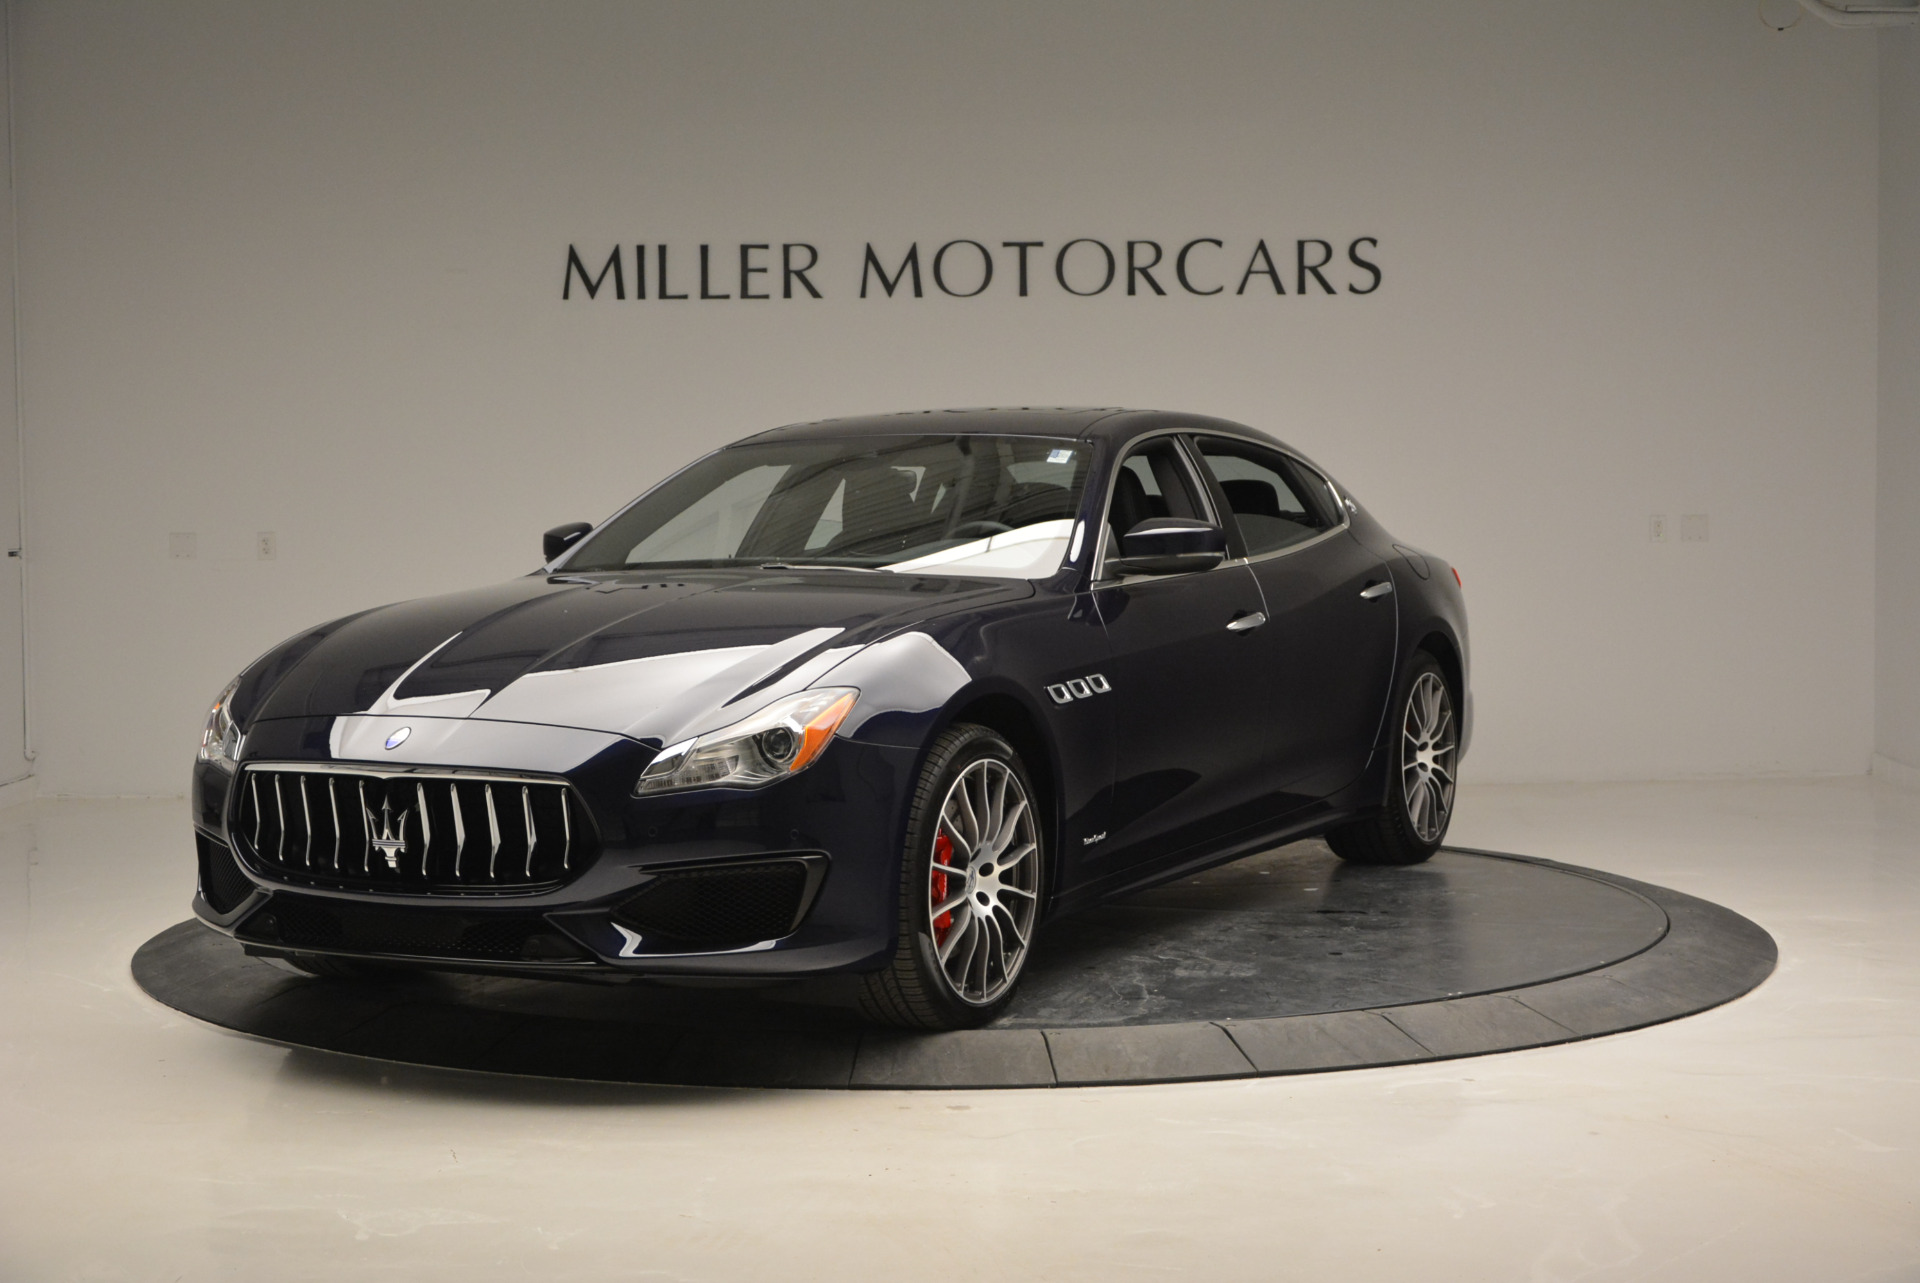 New 2017 Maserati Quattroporte S Q4 GranSport for sale Sold at Bugatti of Greenwich in Greenwich CT 06830 1